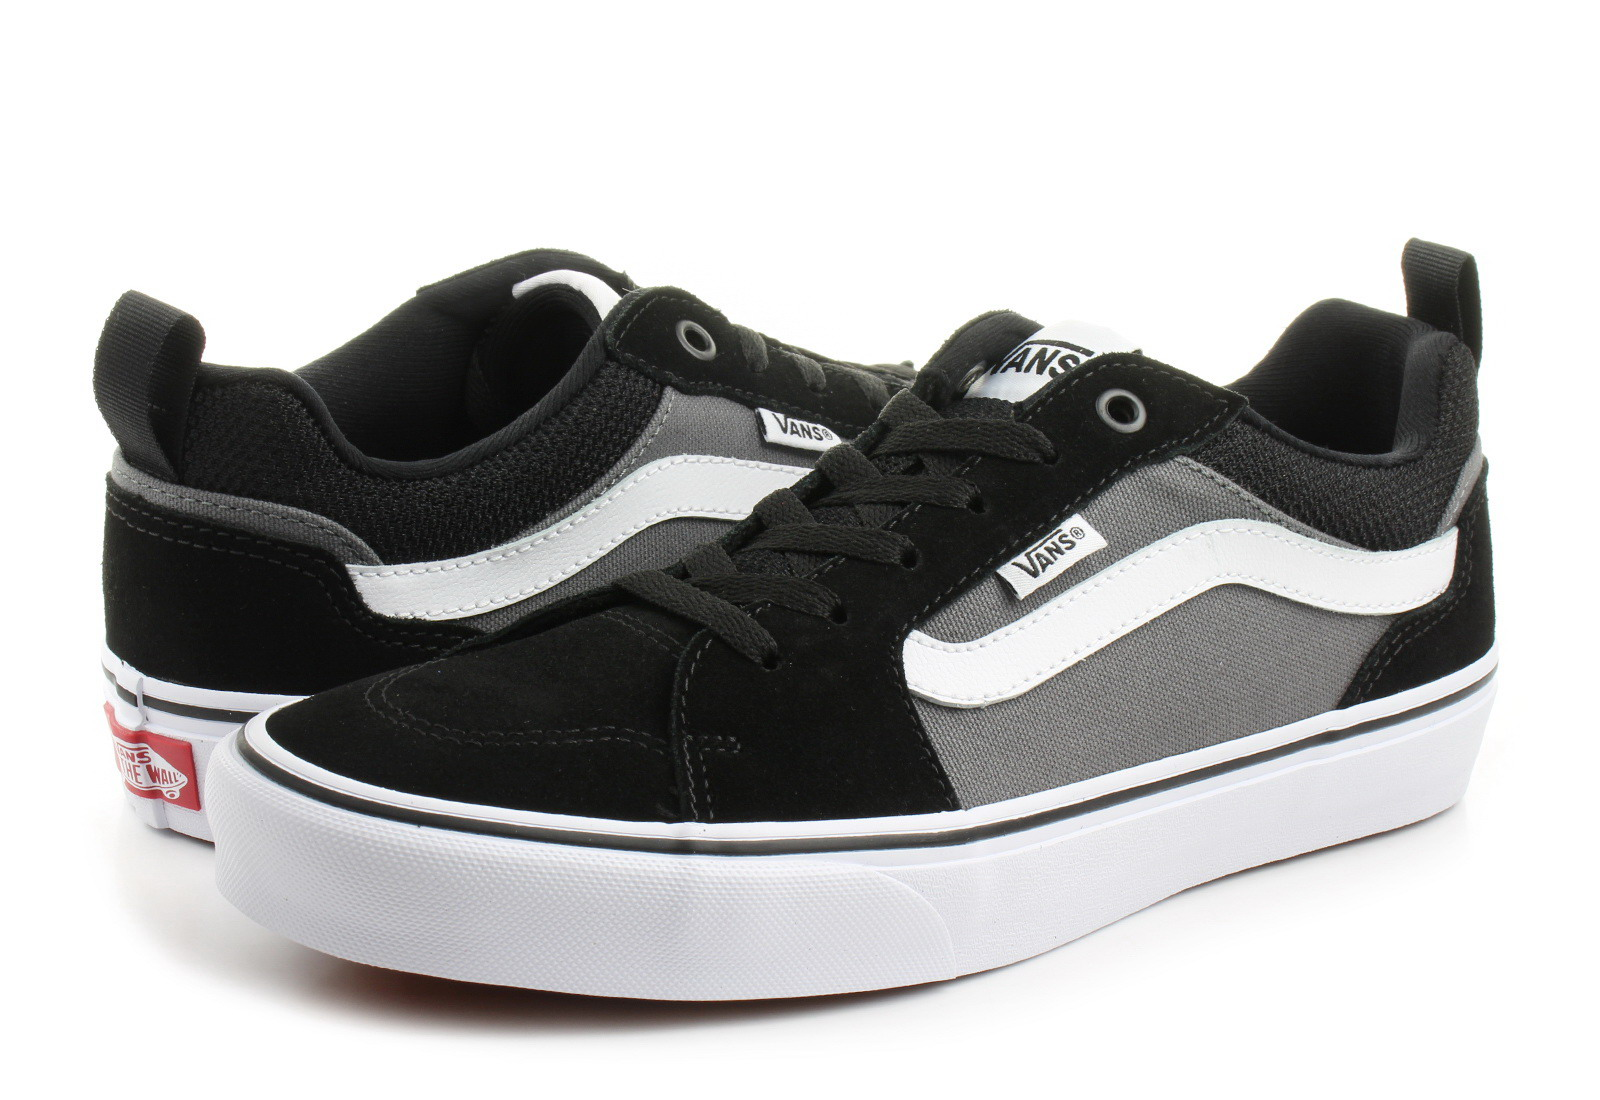 Vans Shoes Mn Filmore VA3MTJT2J Online shop for sneakers, shoes and boots